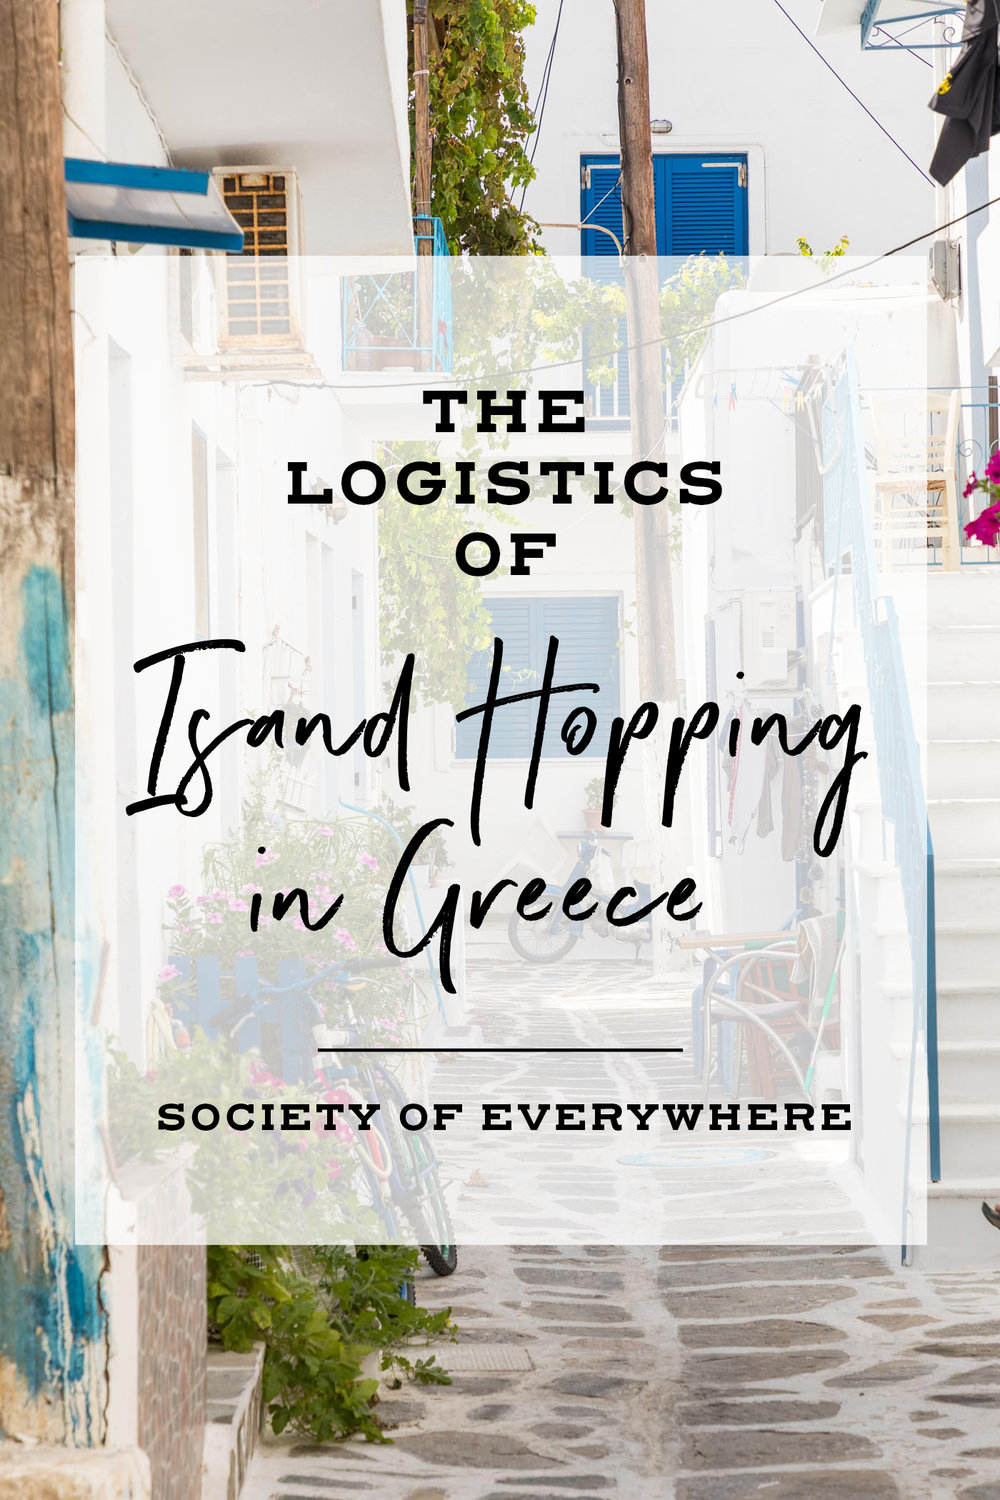 The Logistics of Island Hopping in Greece   Society of Everywhere